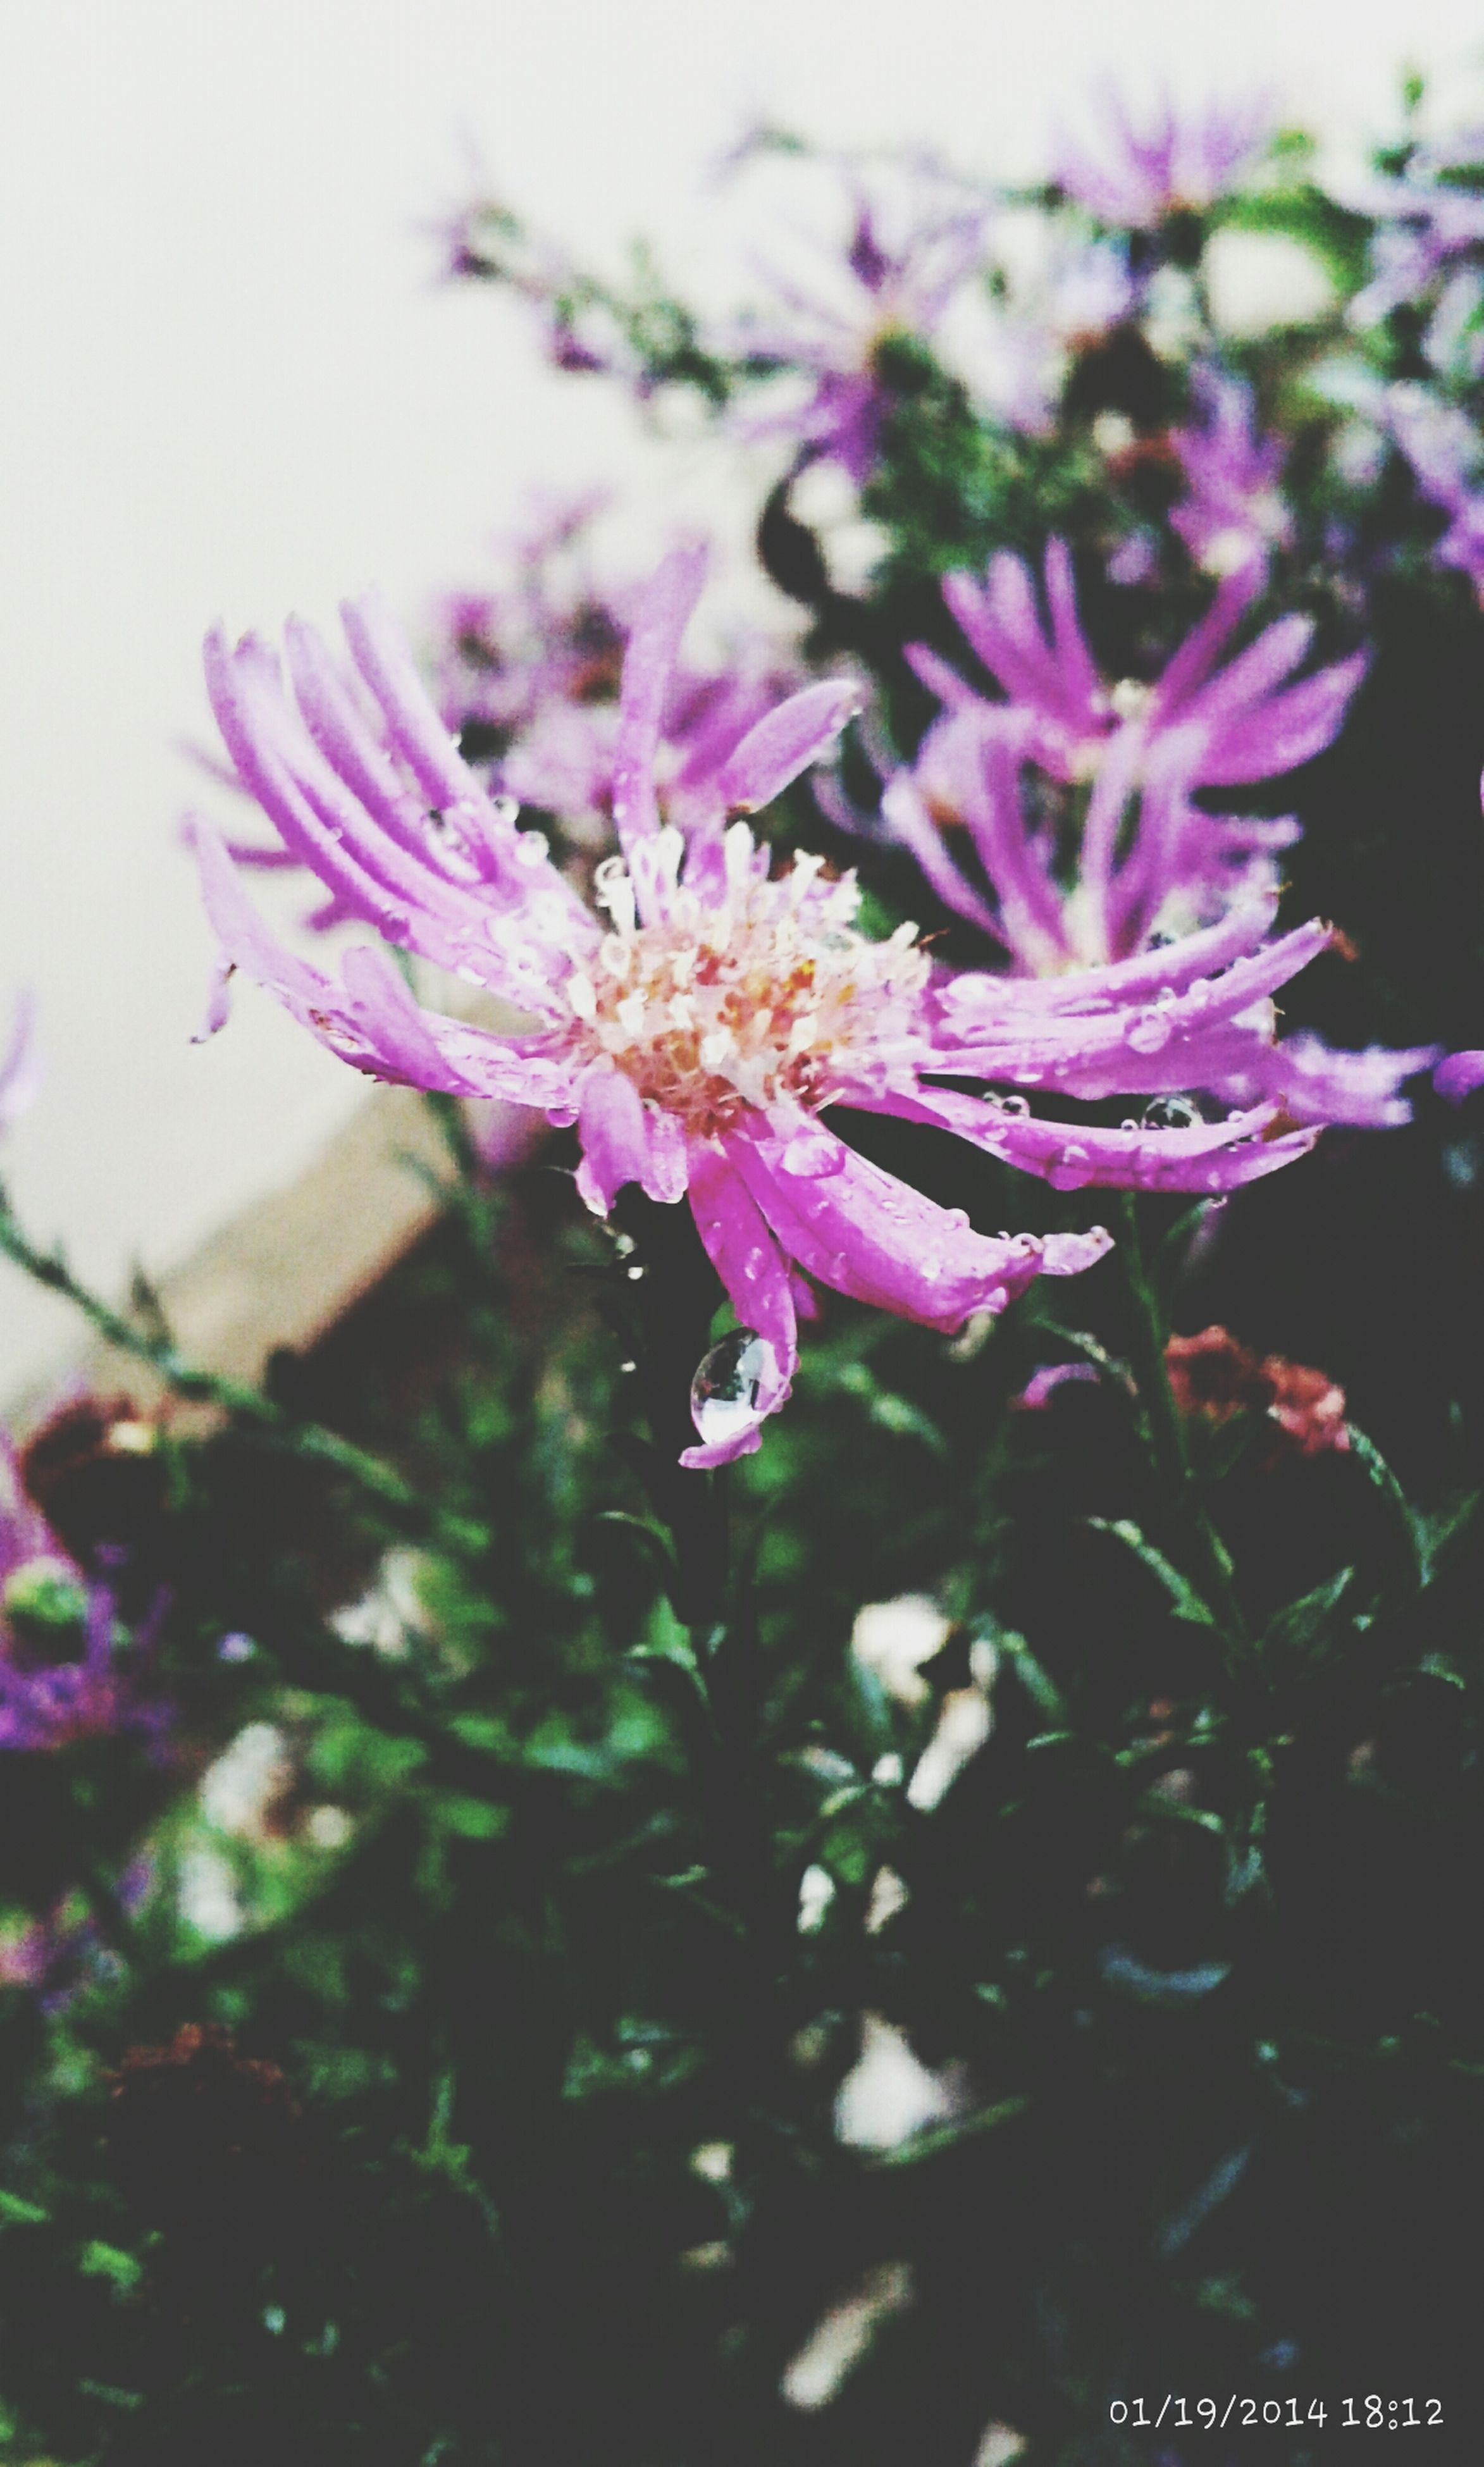 flower, fragility, freshness, pink color, petal, growth, beauty in nature, nature, close-up, focus on foreground, flower head, blooming, plant, pink, in bloom, stem, day, outdoors, no people, blossom